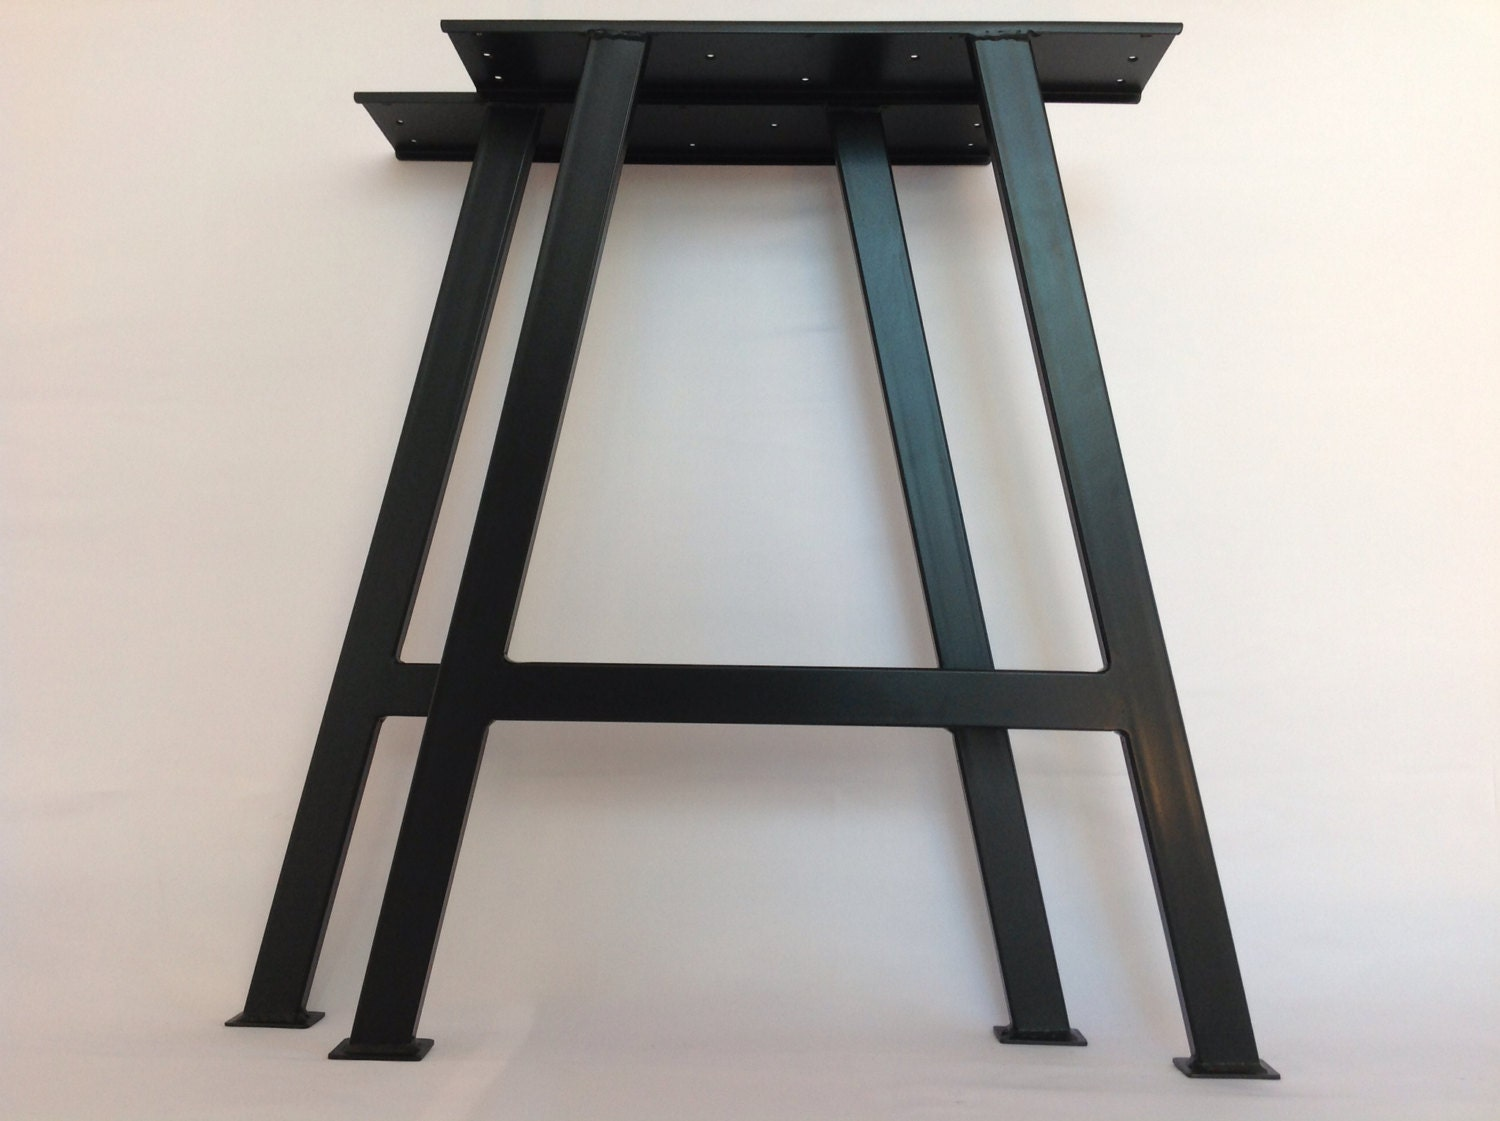 28 astyle table legs table leg powder coated height by